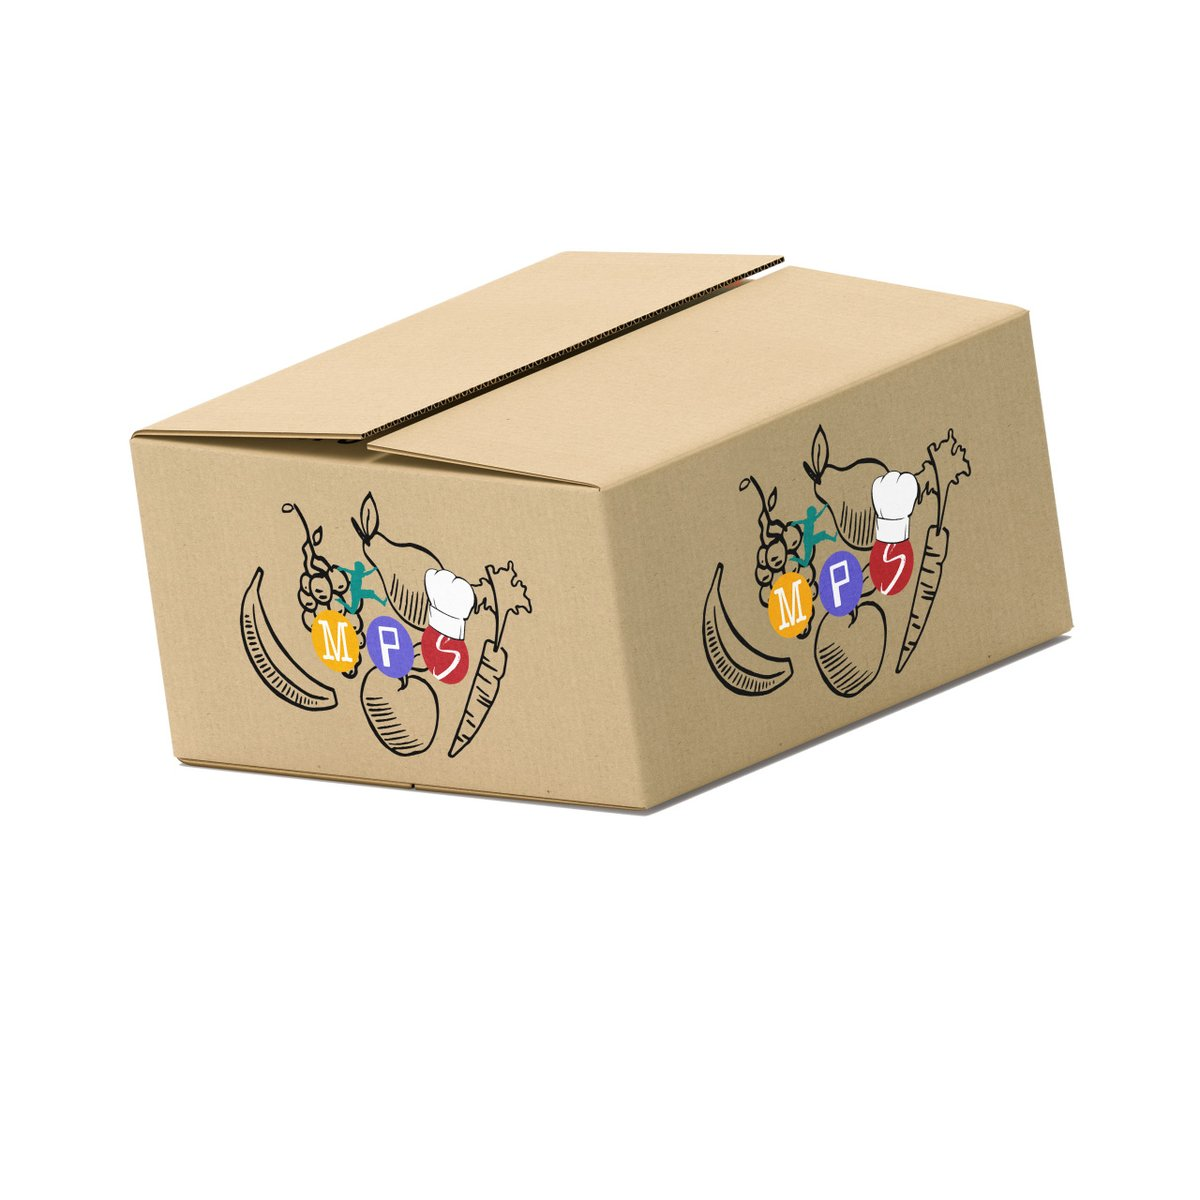 Get ready for the weekend by visiting one of our Friday Free Food Box Pick-up Sites! 1 box per child 18 & under. Box contains food for 7 breakfasts & 7 lunches with fresh fruit & veggies. Open your trunk for contact-free pick-up! Supplemental groceries available @SheridanStory.